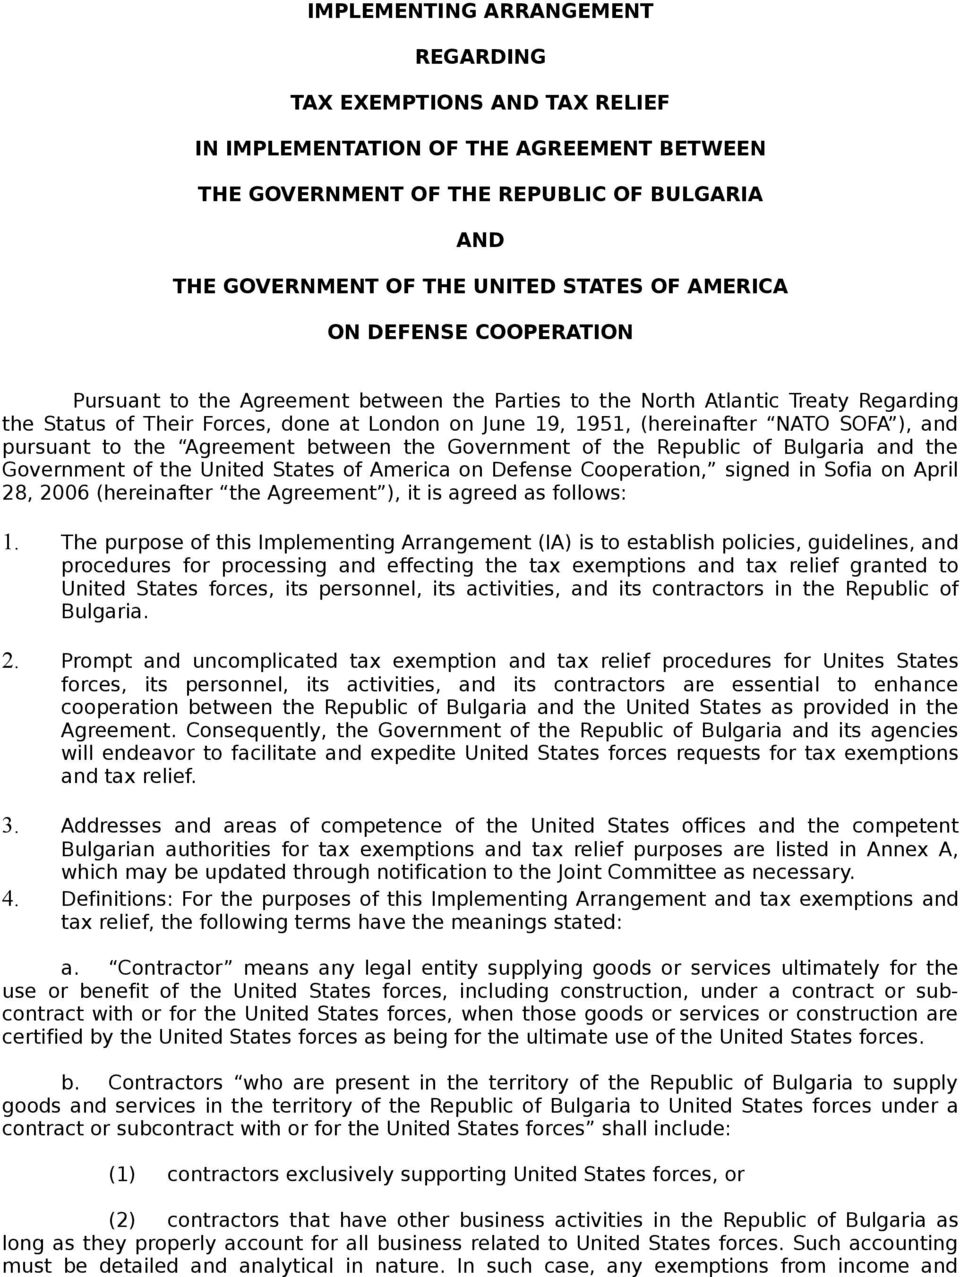 Agreement between the Government of the Republic of Bulgaria and the Government of the United States of America on Defense Cooperation, signed in Sofia on April 28, 2006 (hereinafter the Agreement ),